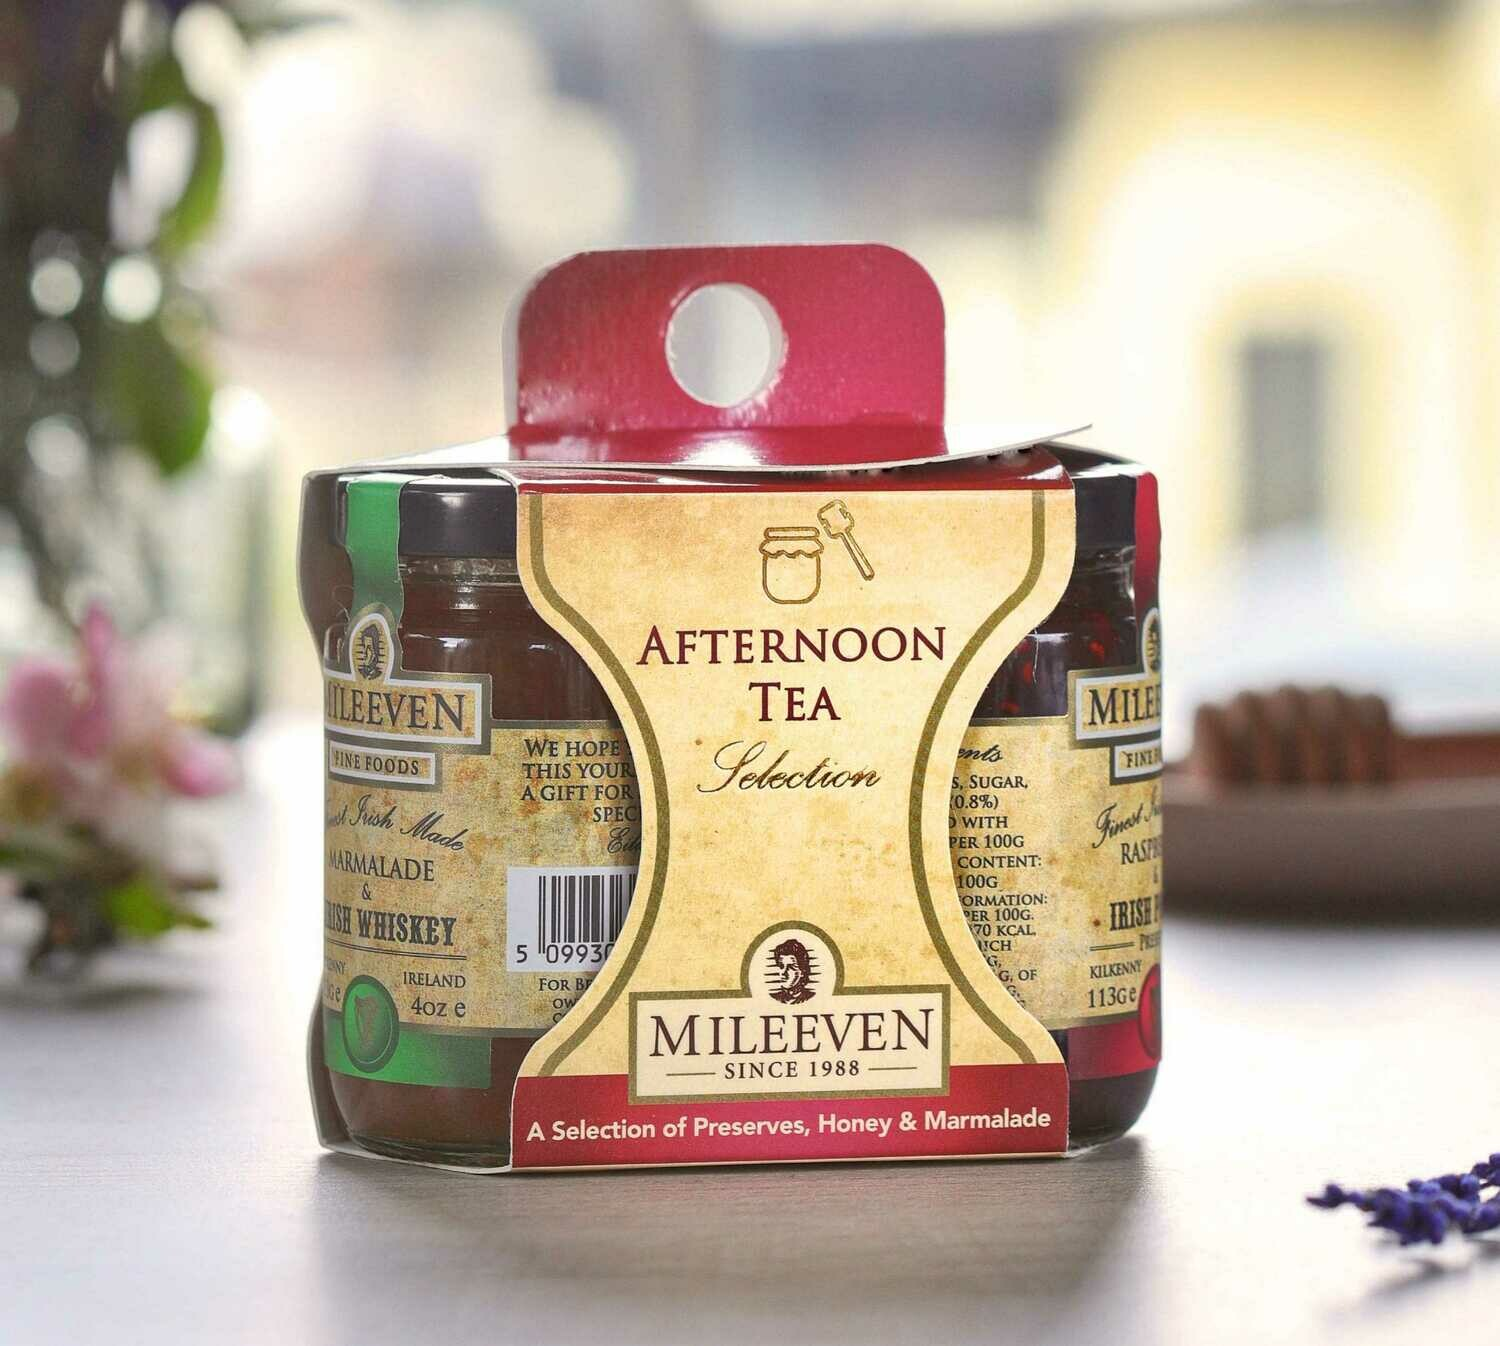 Mileeven Afternoon Tea Selection 3 x 113g